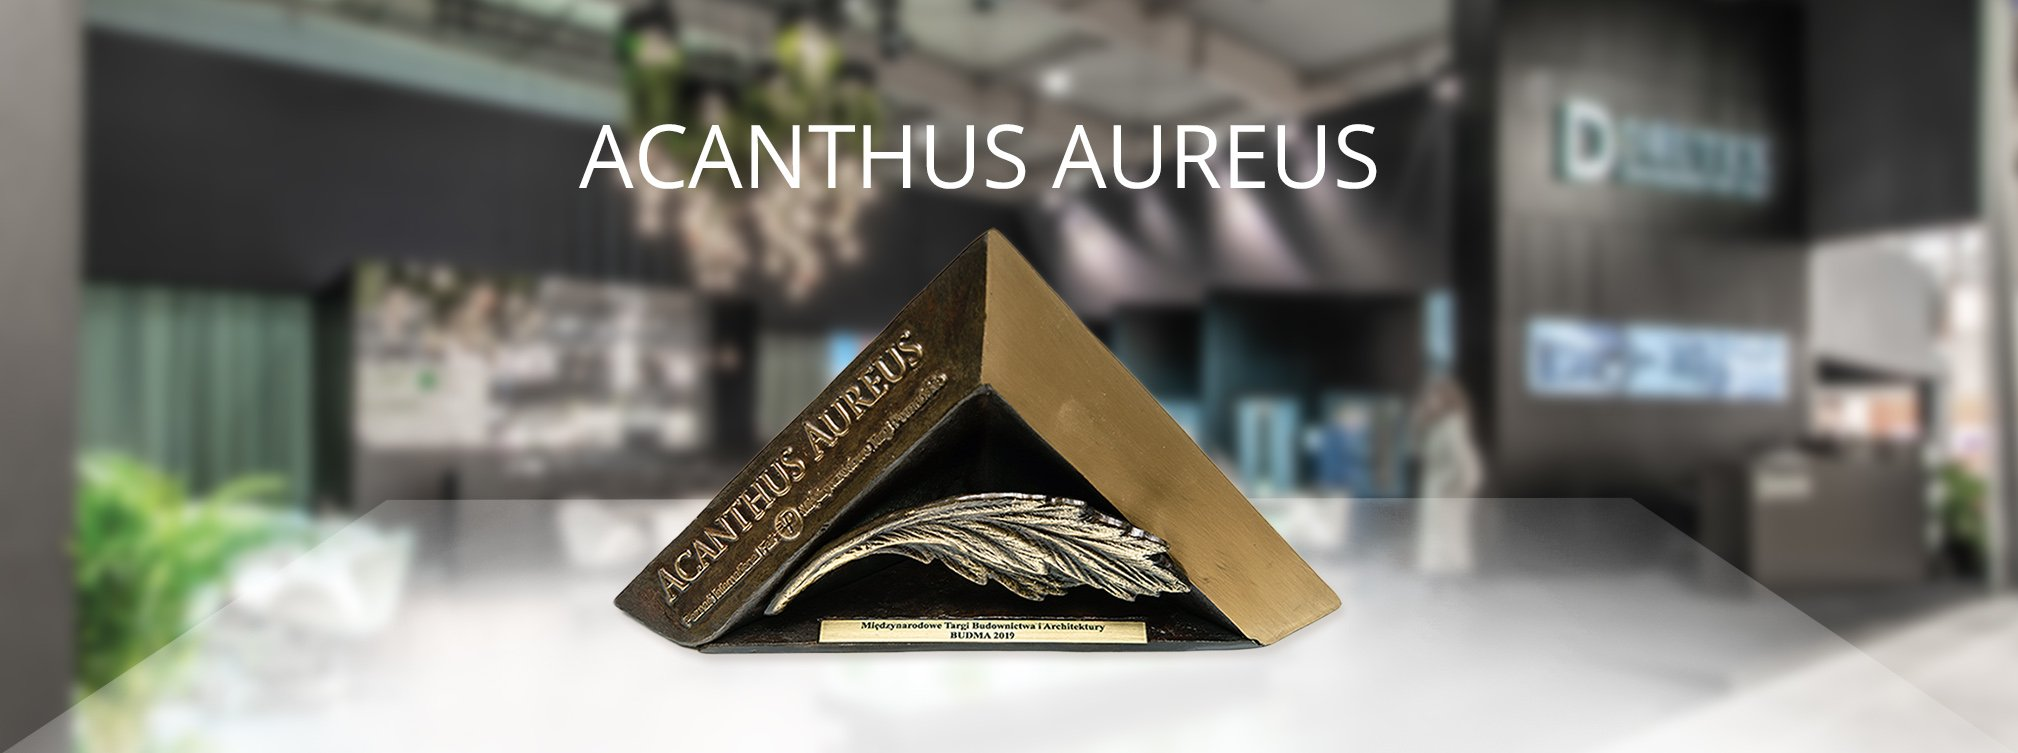 Drutex receives the Golden Acanthus award